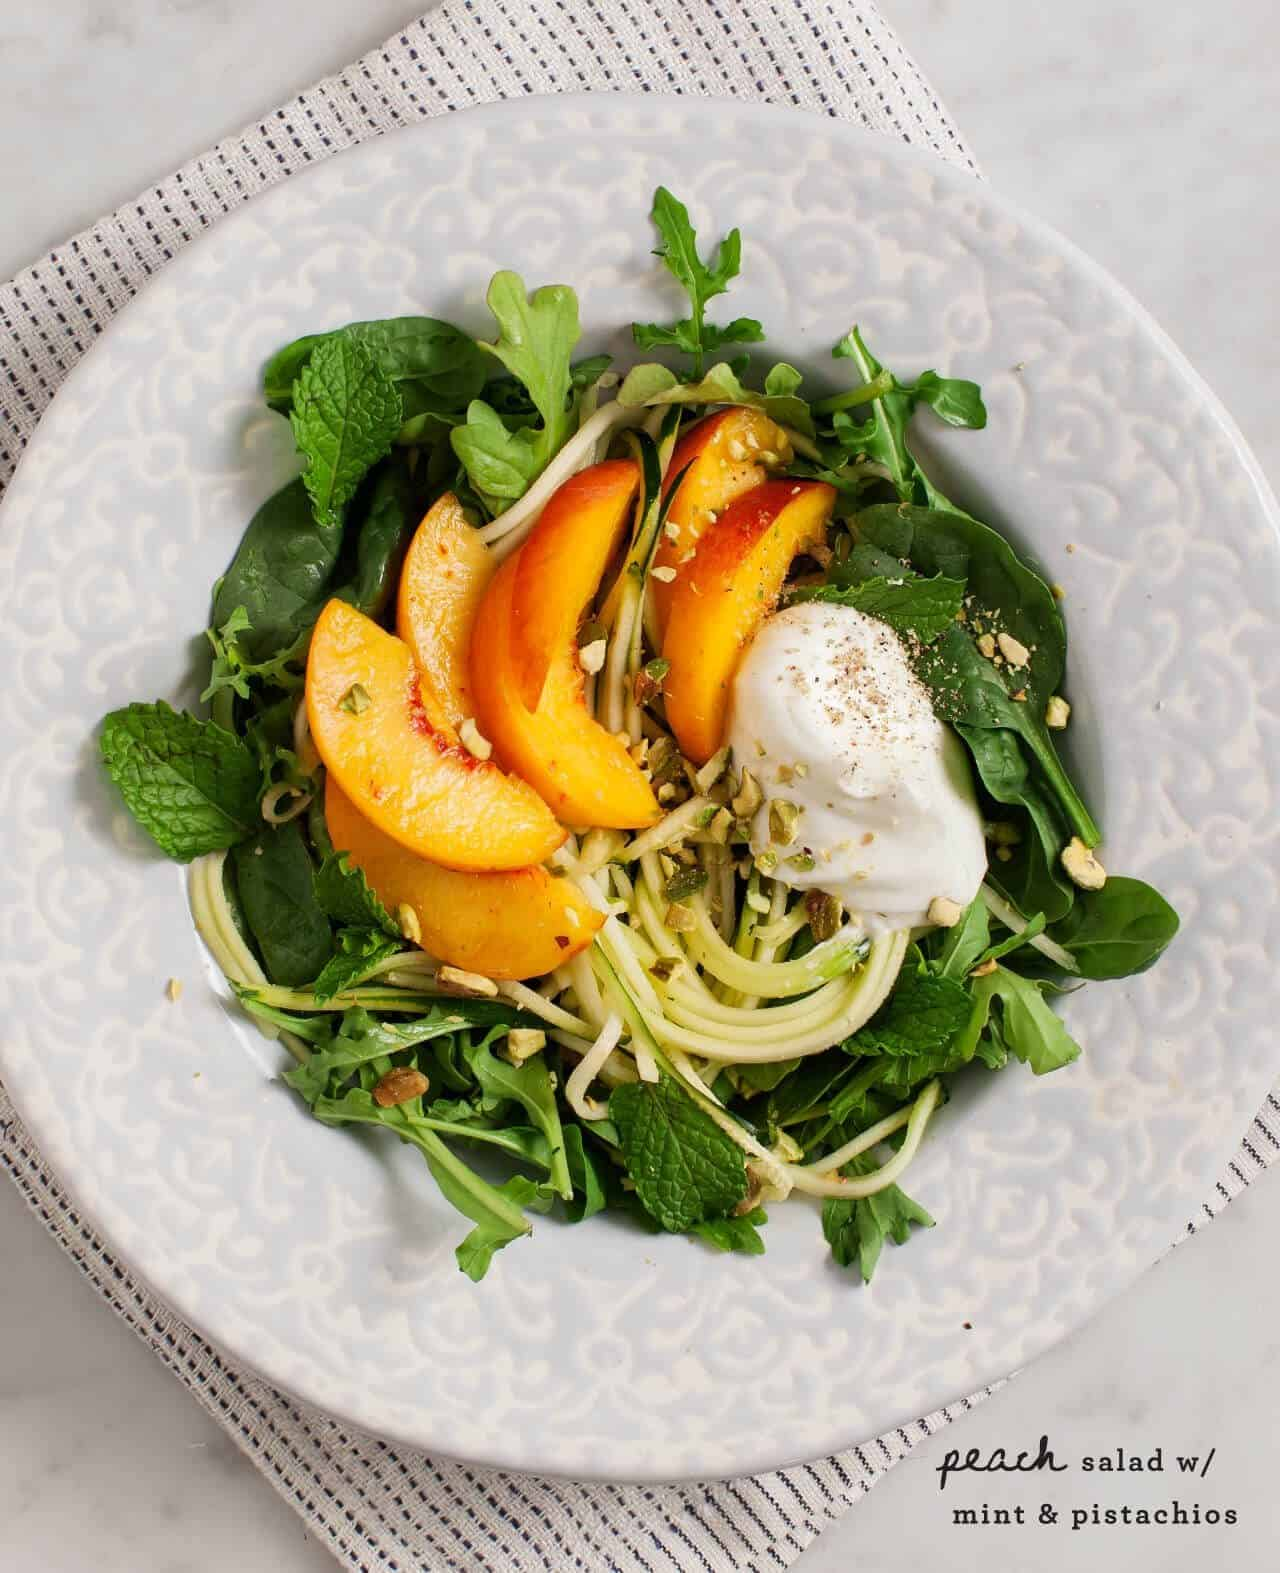 Peach Salad with Mint and Pistachios: